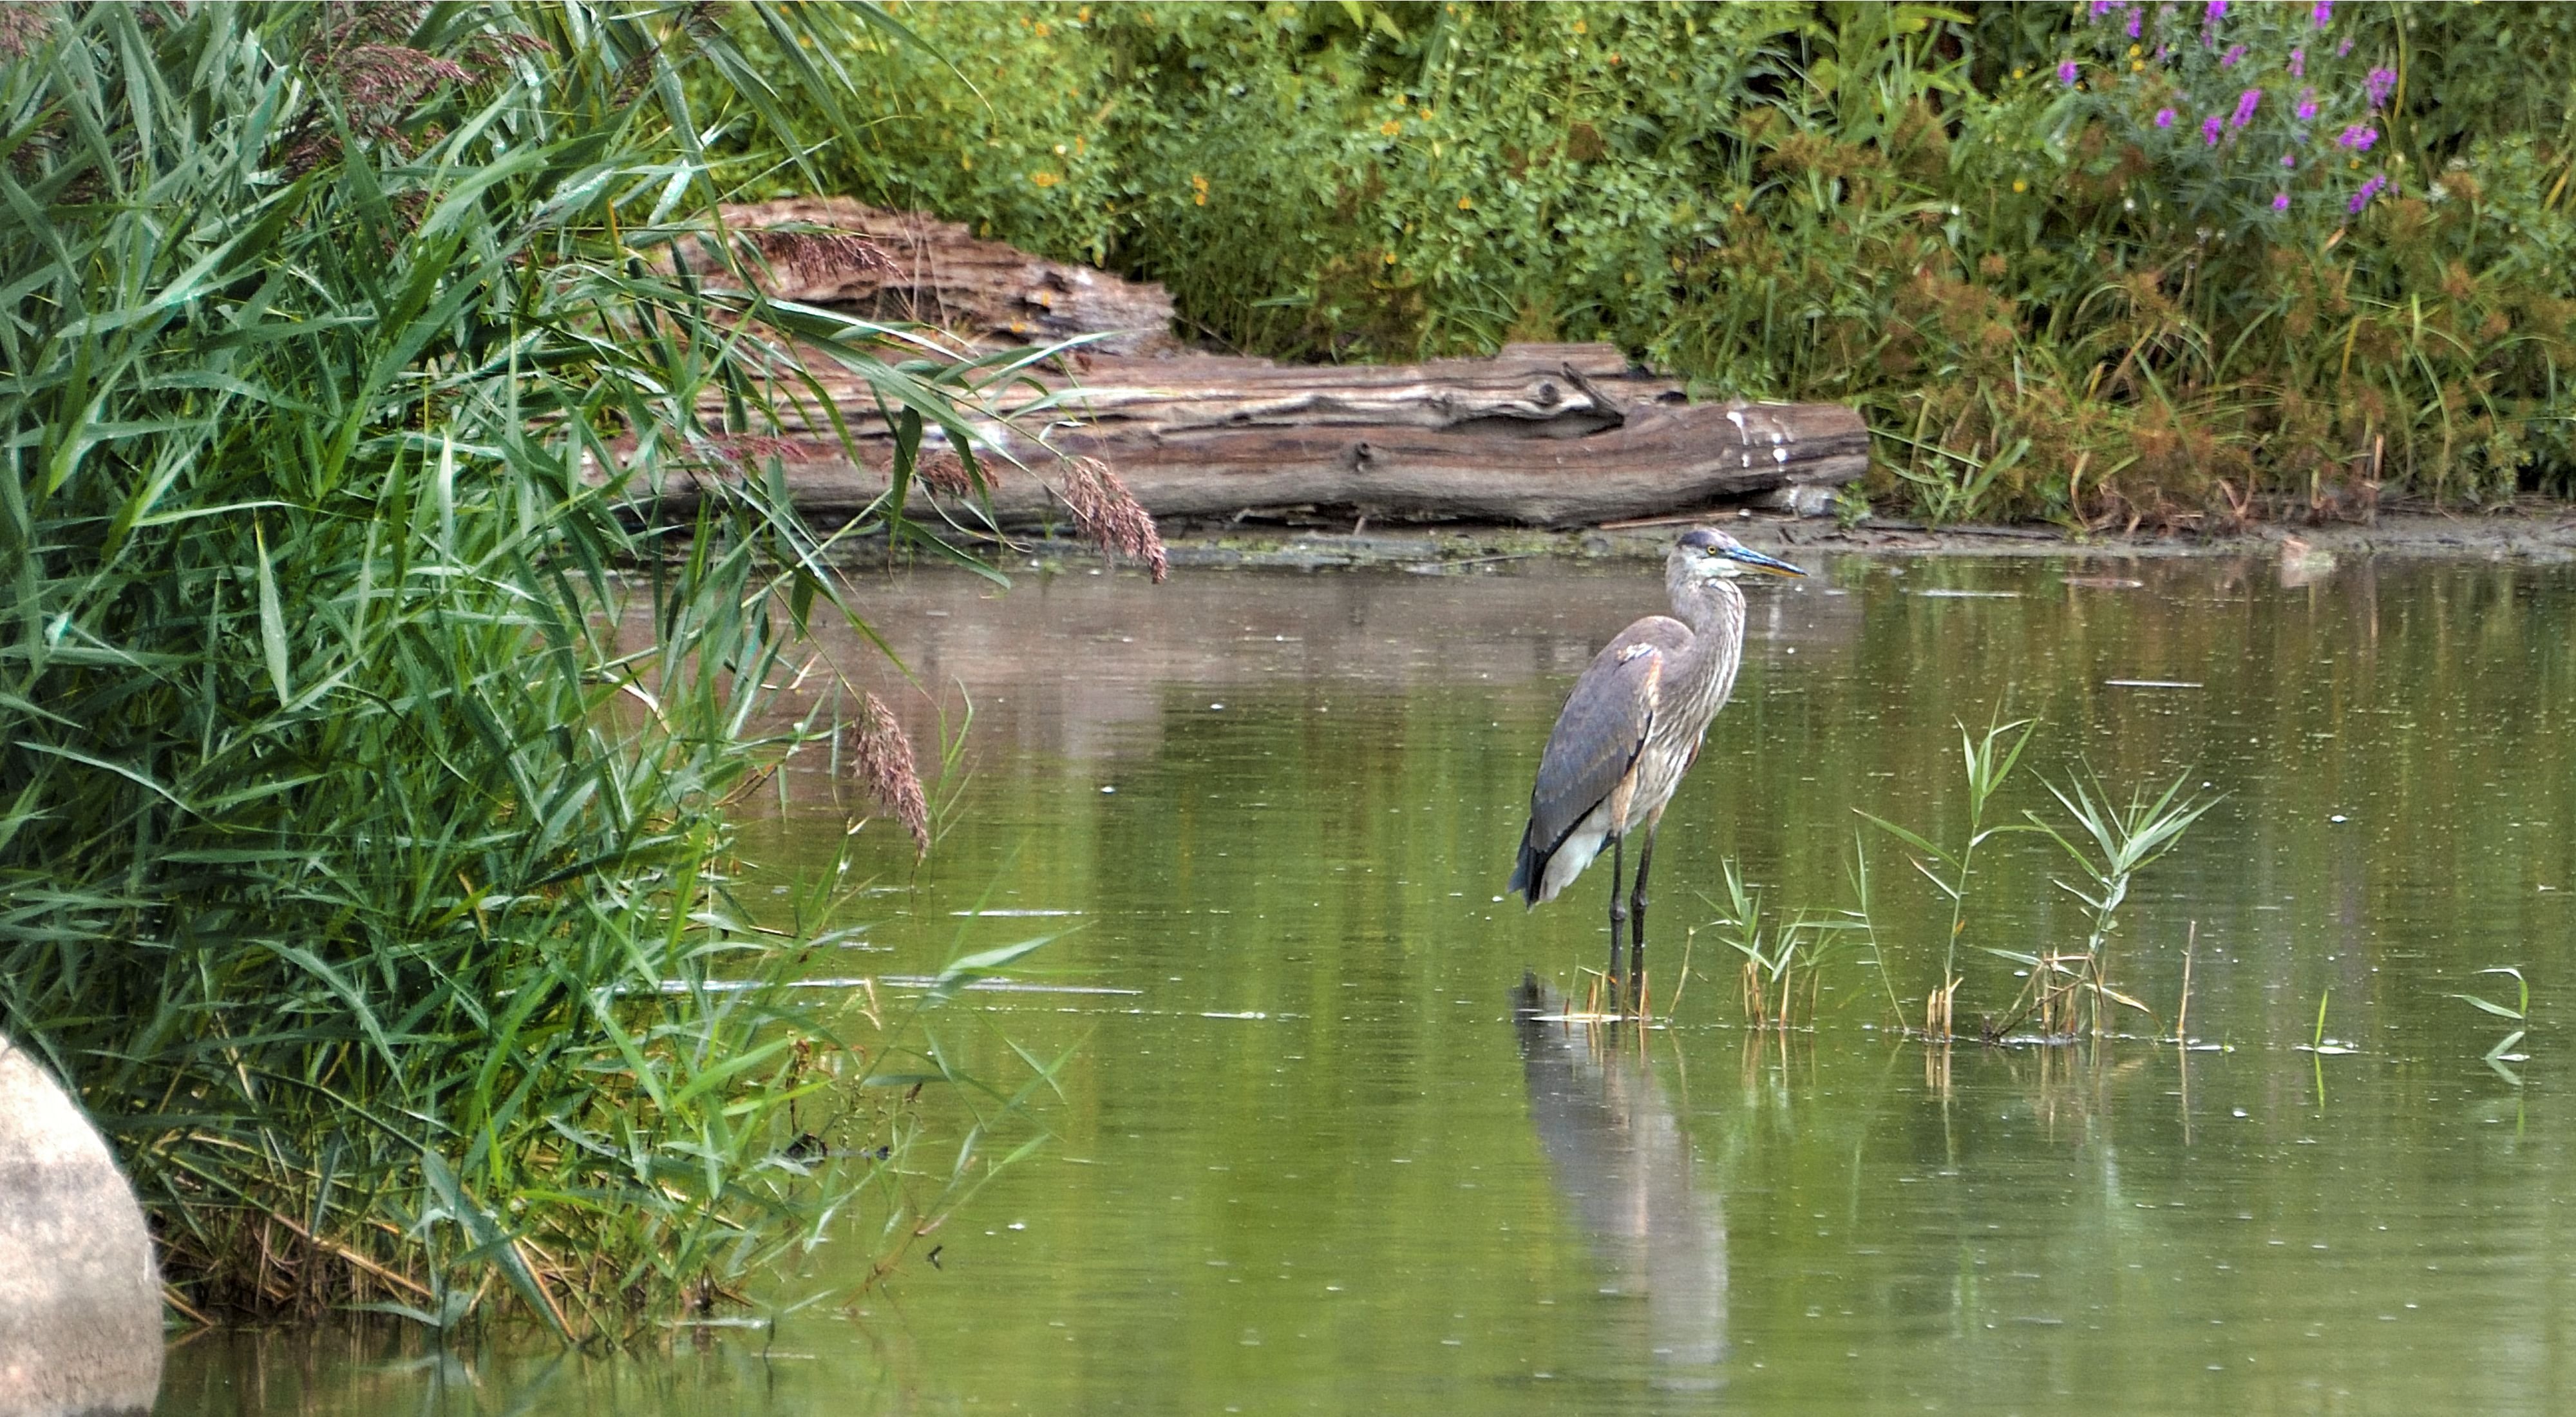 A heron stands in a small pool of water.